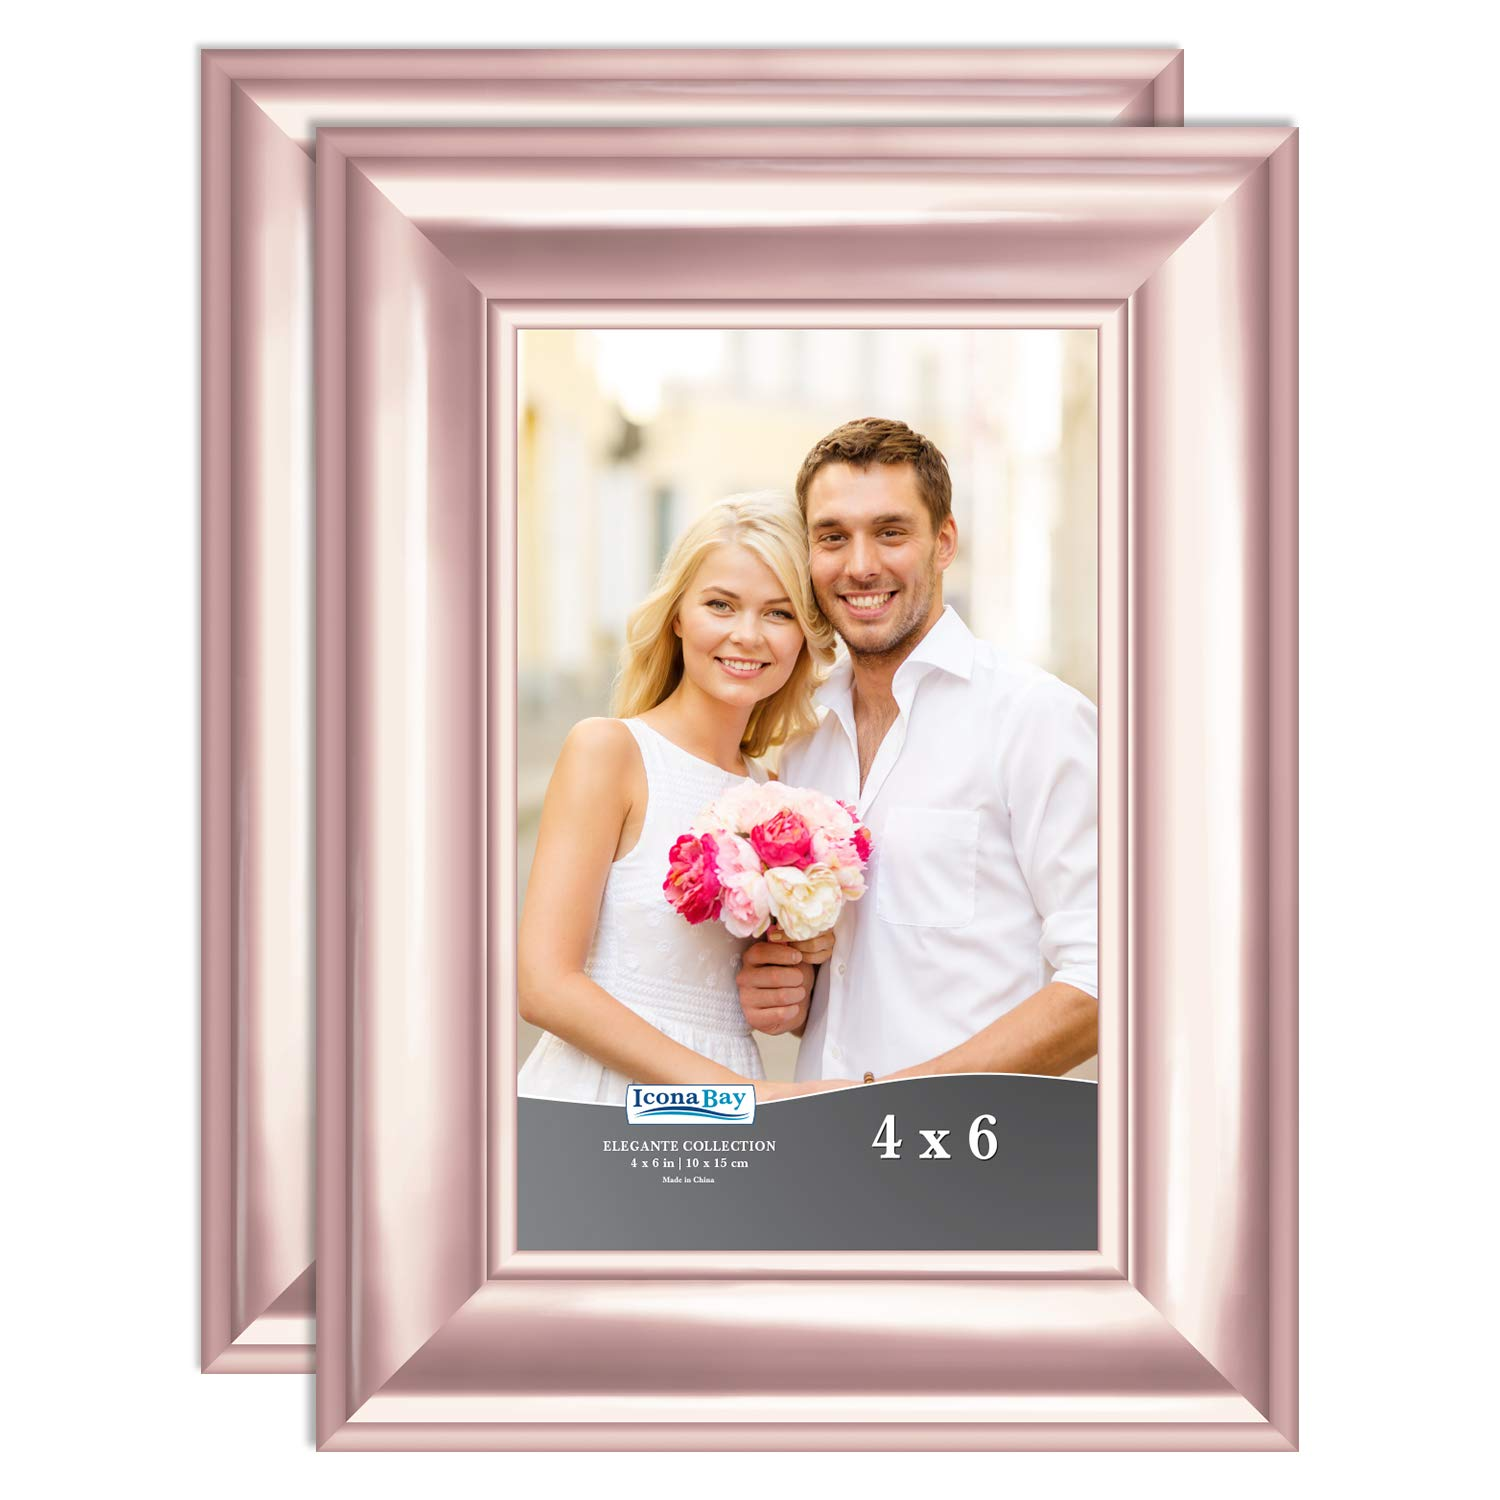 Icona Bay 4x6 Picture Frame (2 Pack, Rose Gold), Rose Gold Photo Frame 4 x 6, Wall Mount or Table Top, Set of 2 Elegante Collection by Icona Bay